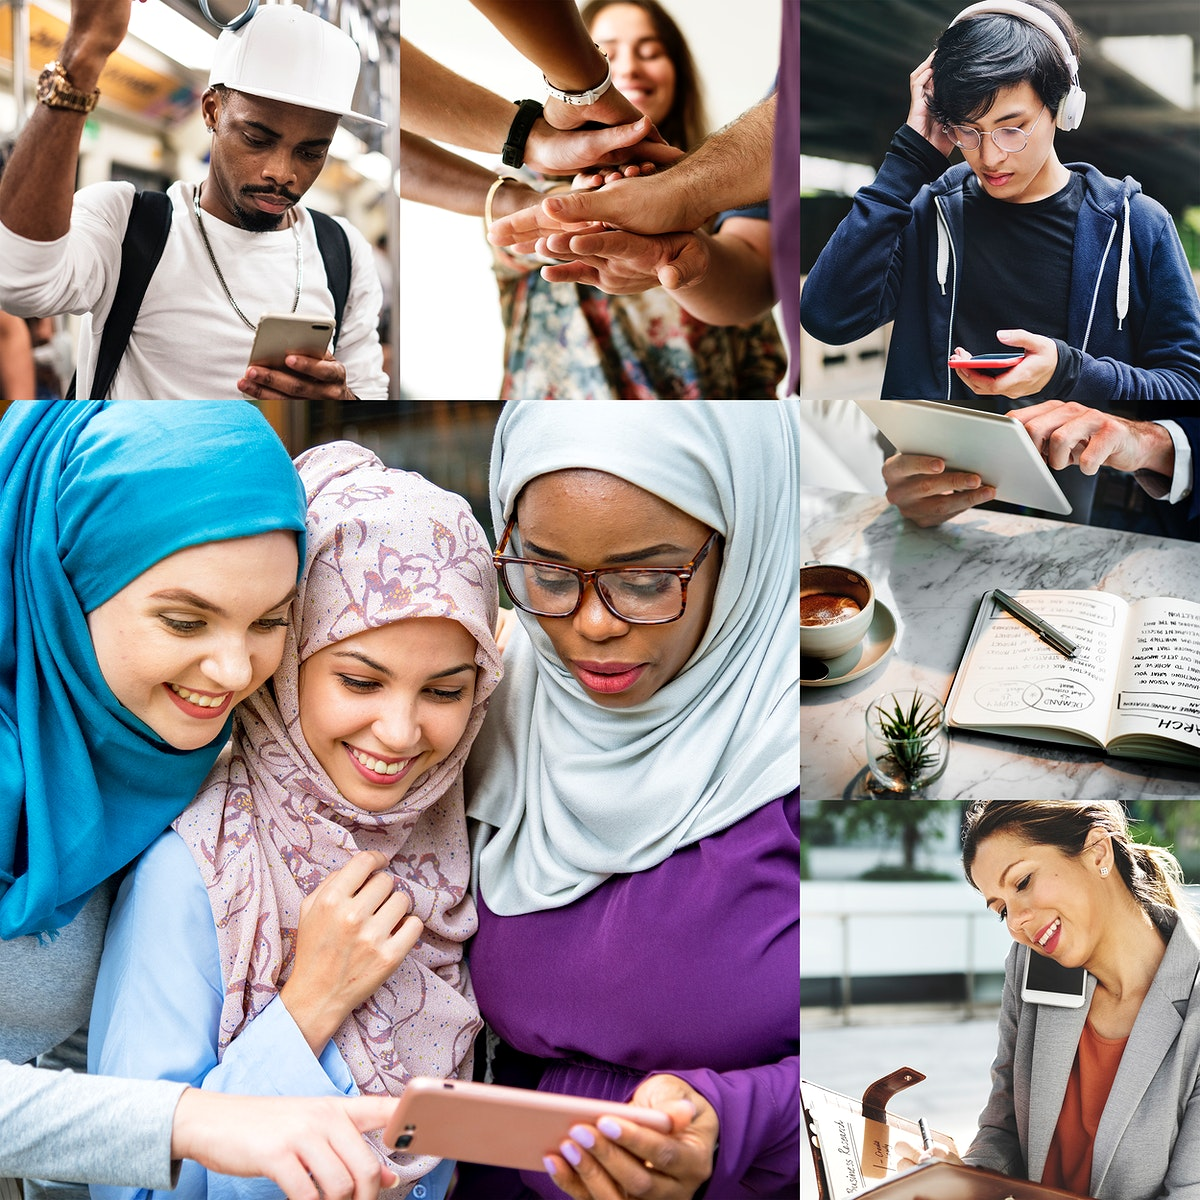 Diverse people network through technology images